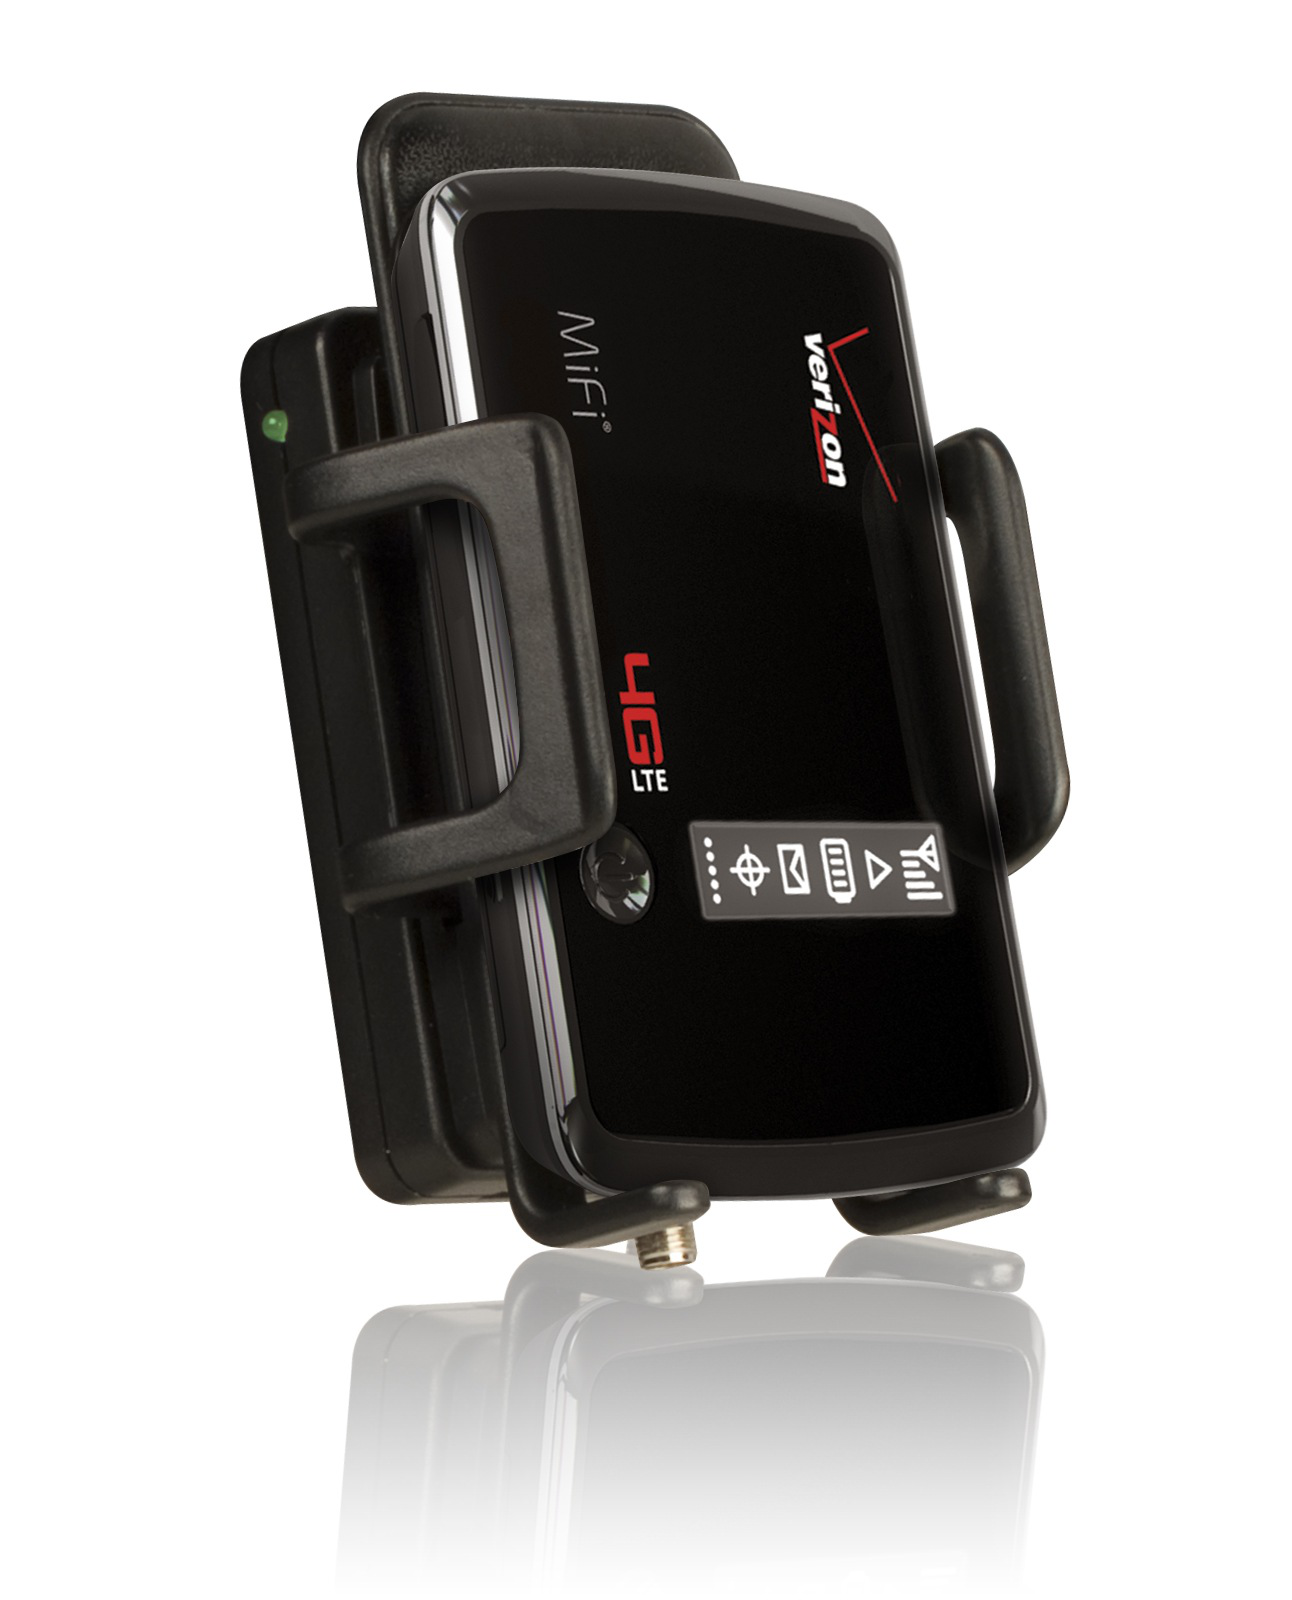 Wilson dials up mobile signal booster